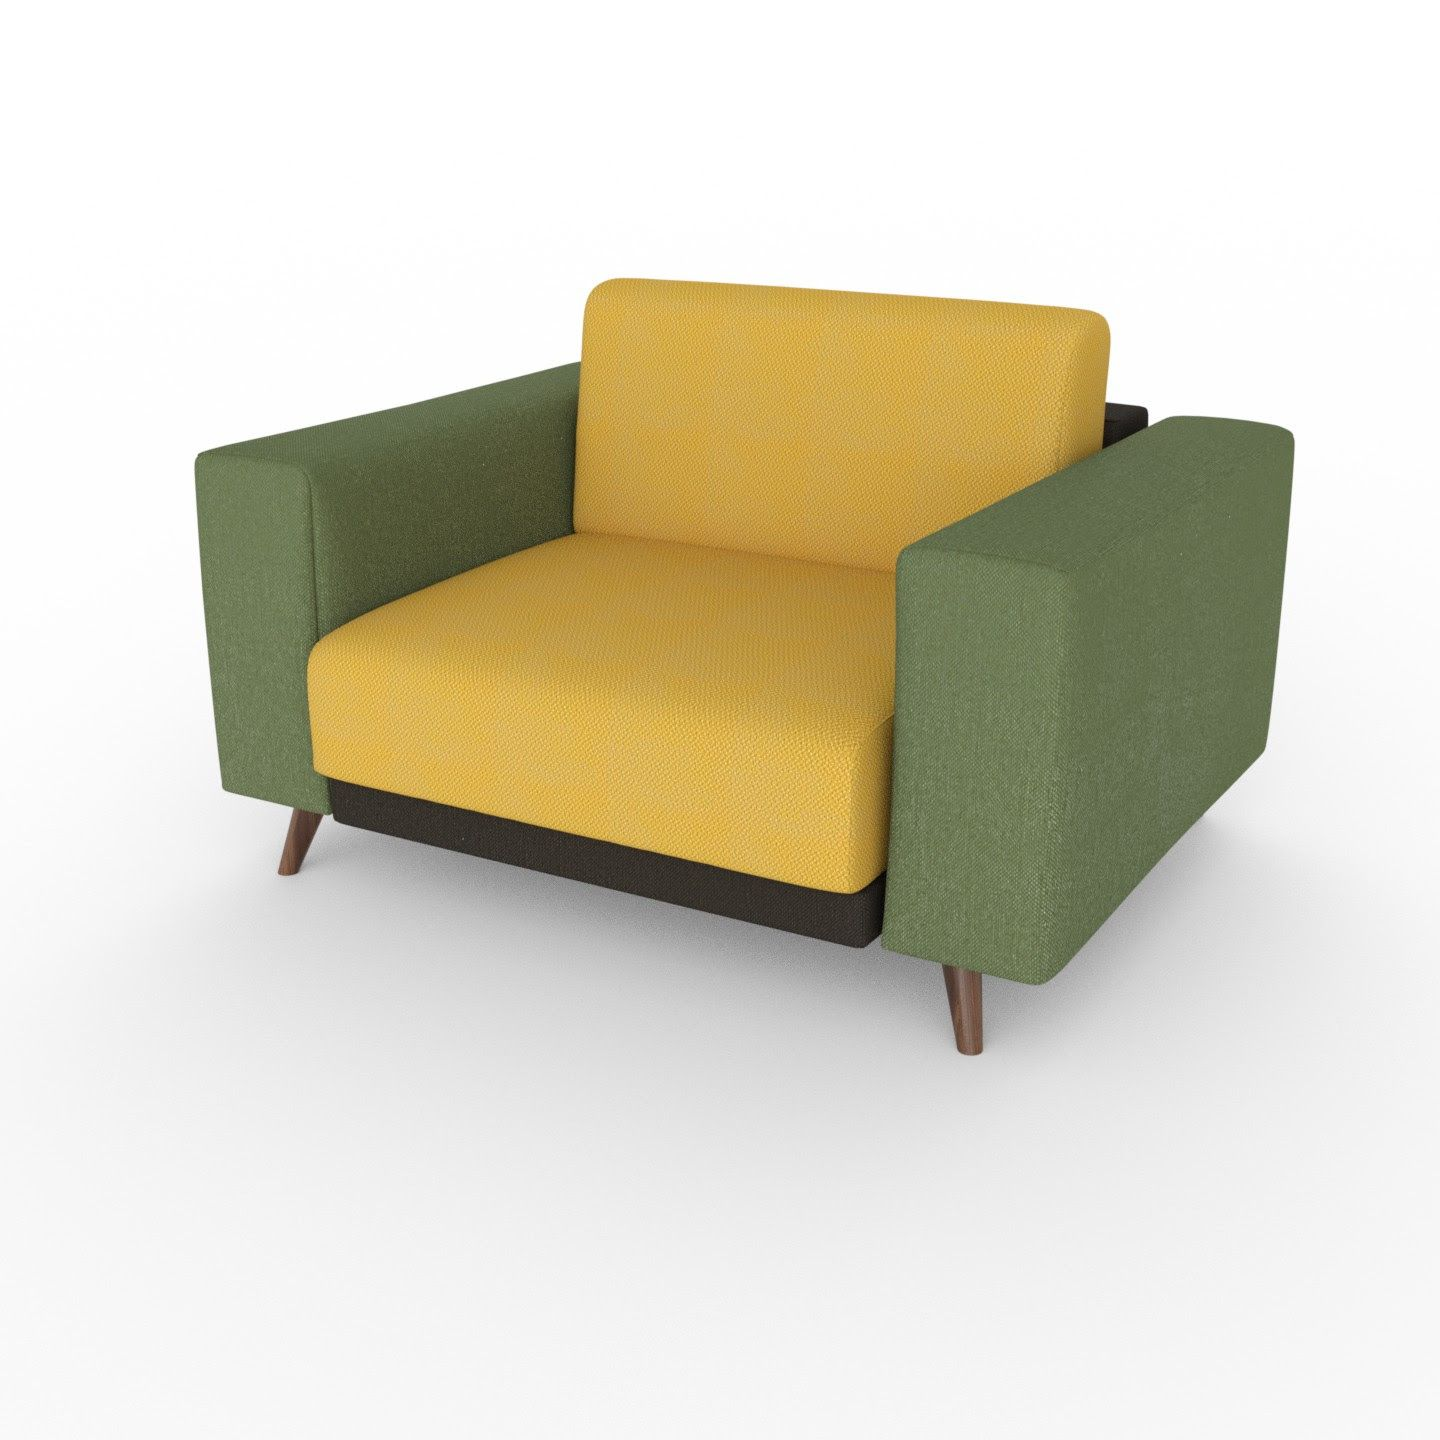 Sweet Seventies   A Combination Of Olive Green, Chocolate Brown And Rape  Yellow. #